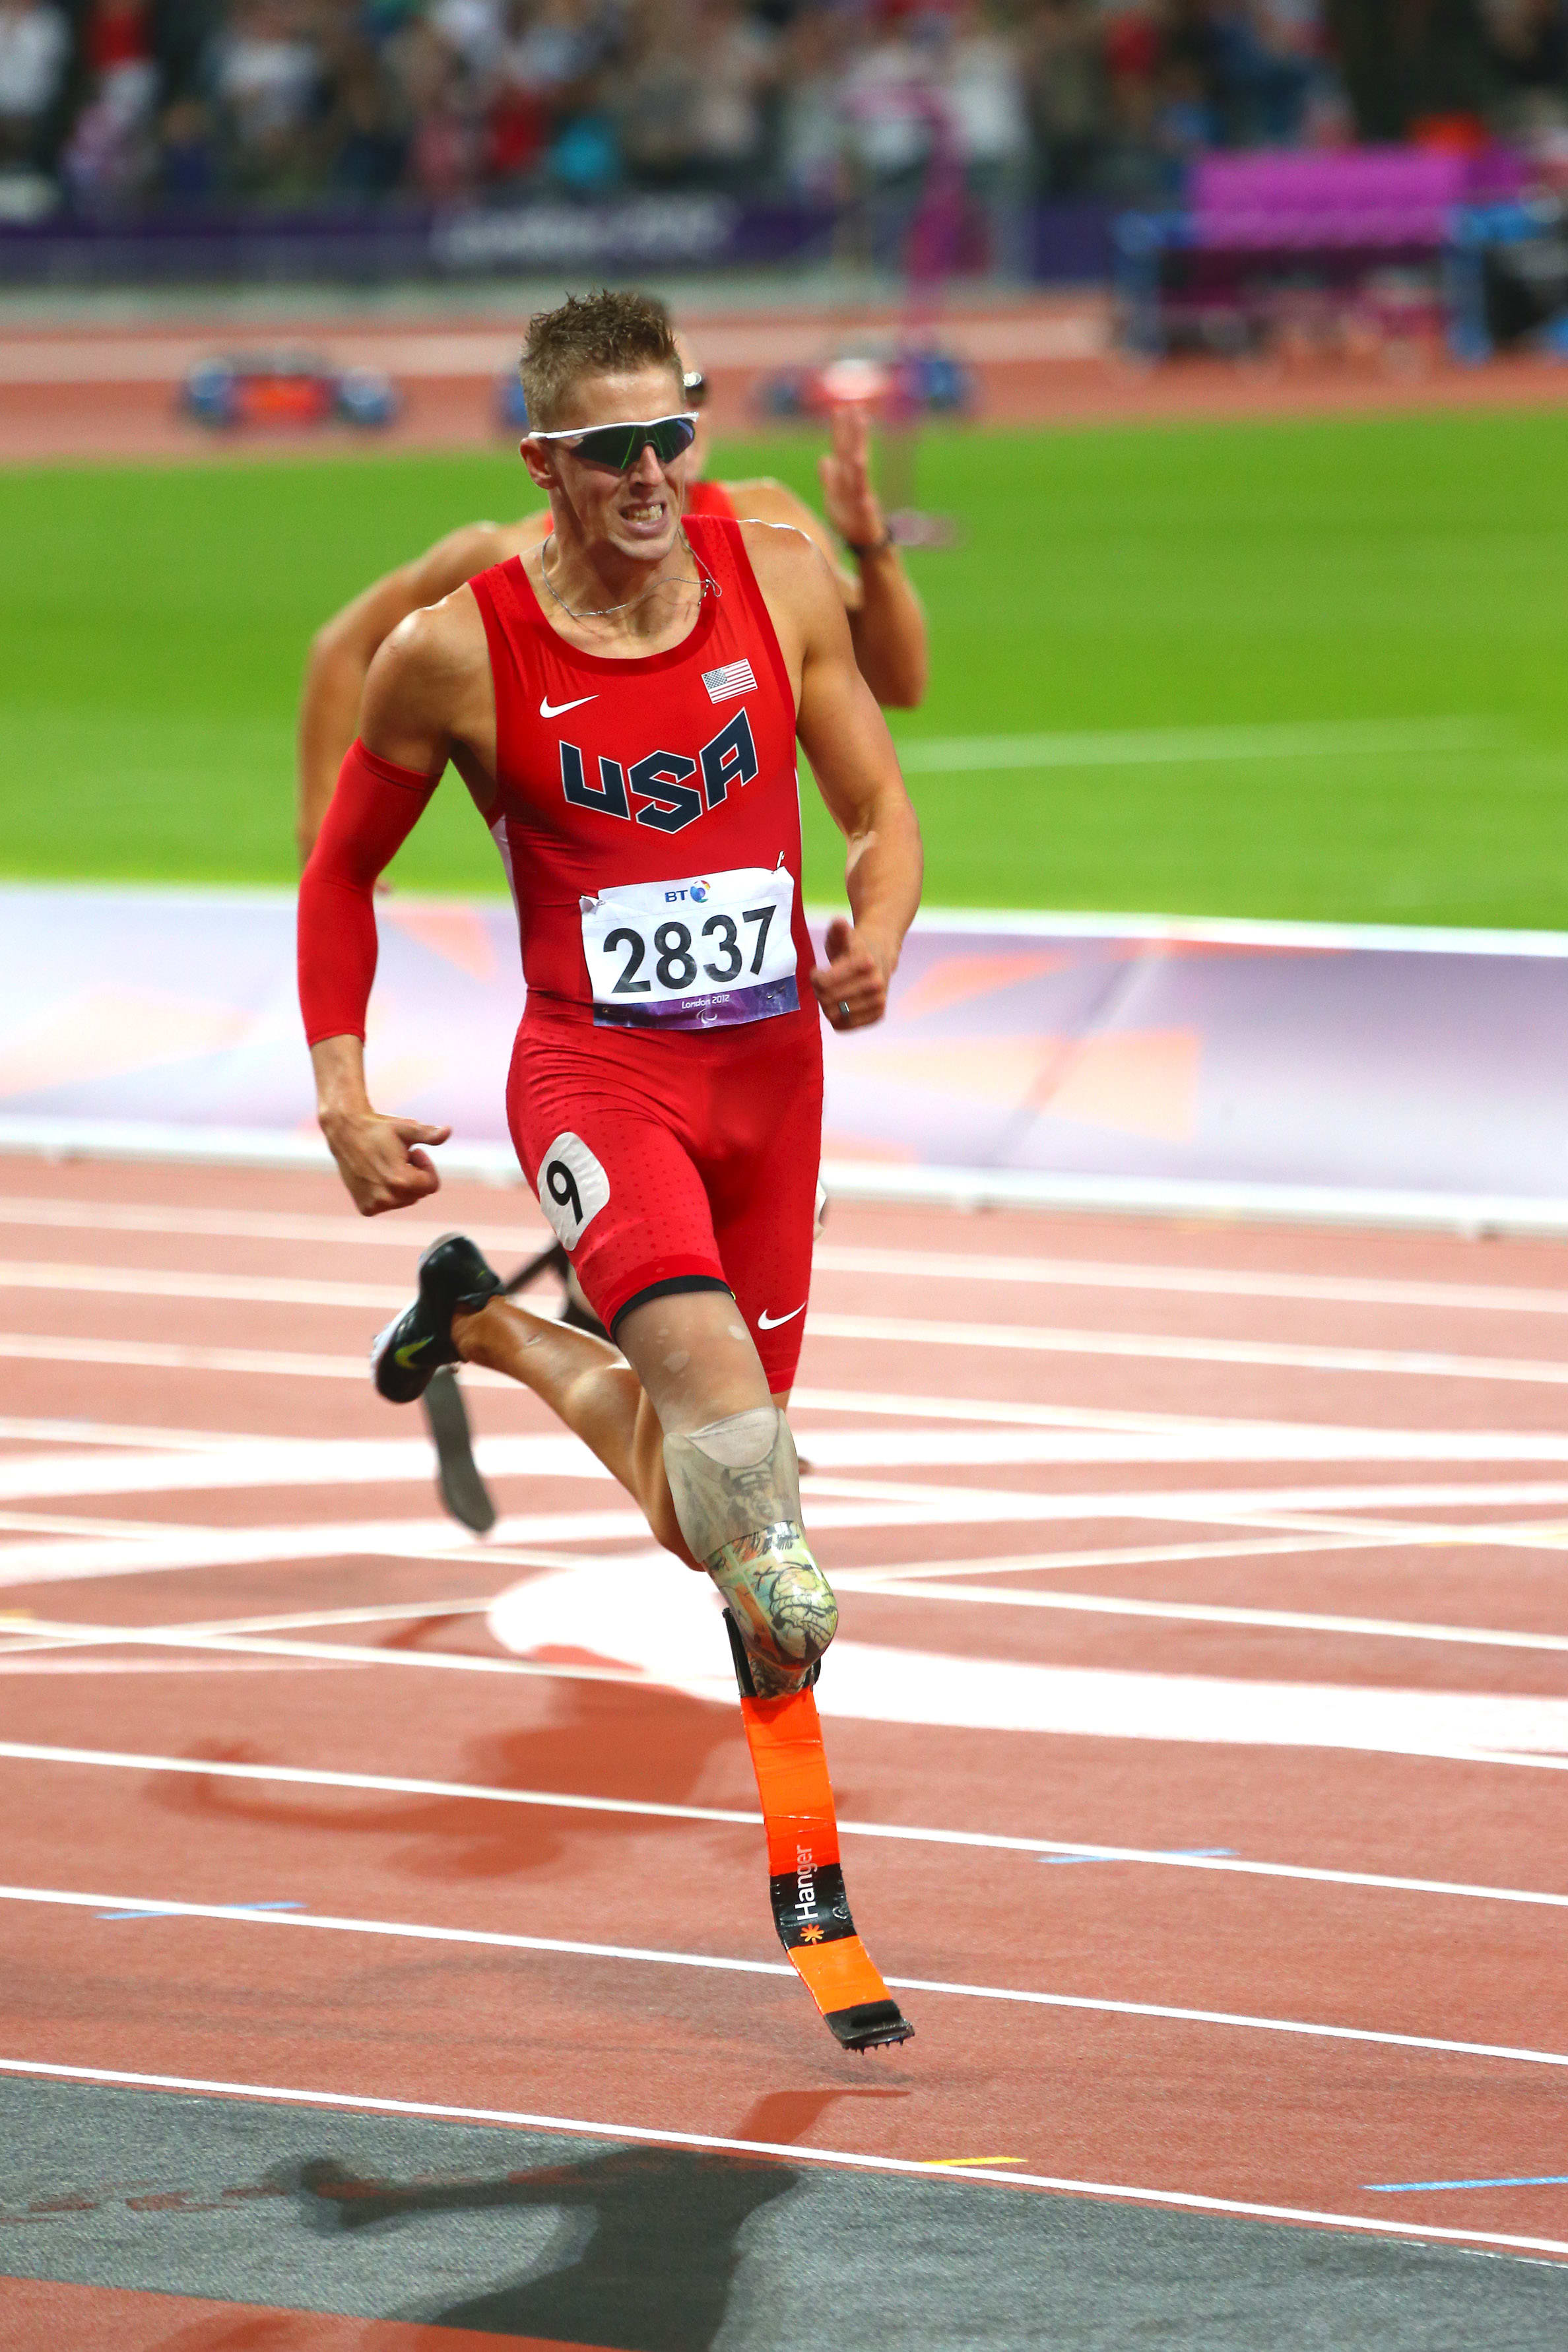 Help 2 time Paralympian David Prince prepare for the 2017 Season and welcome a new member to the family!